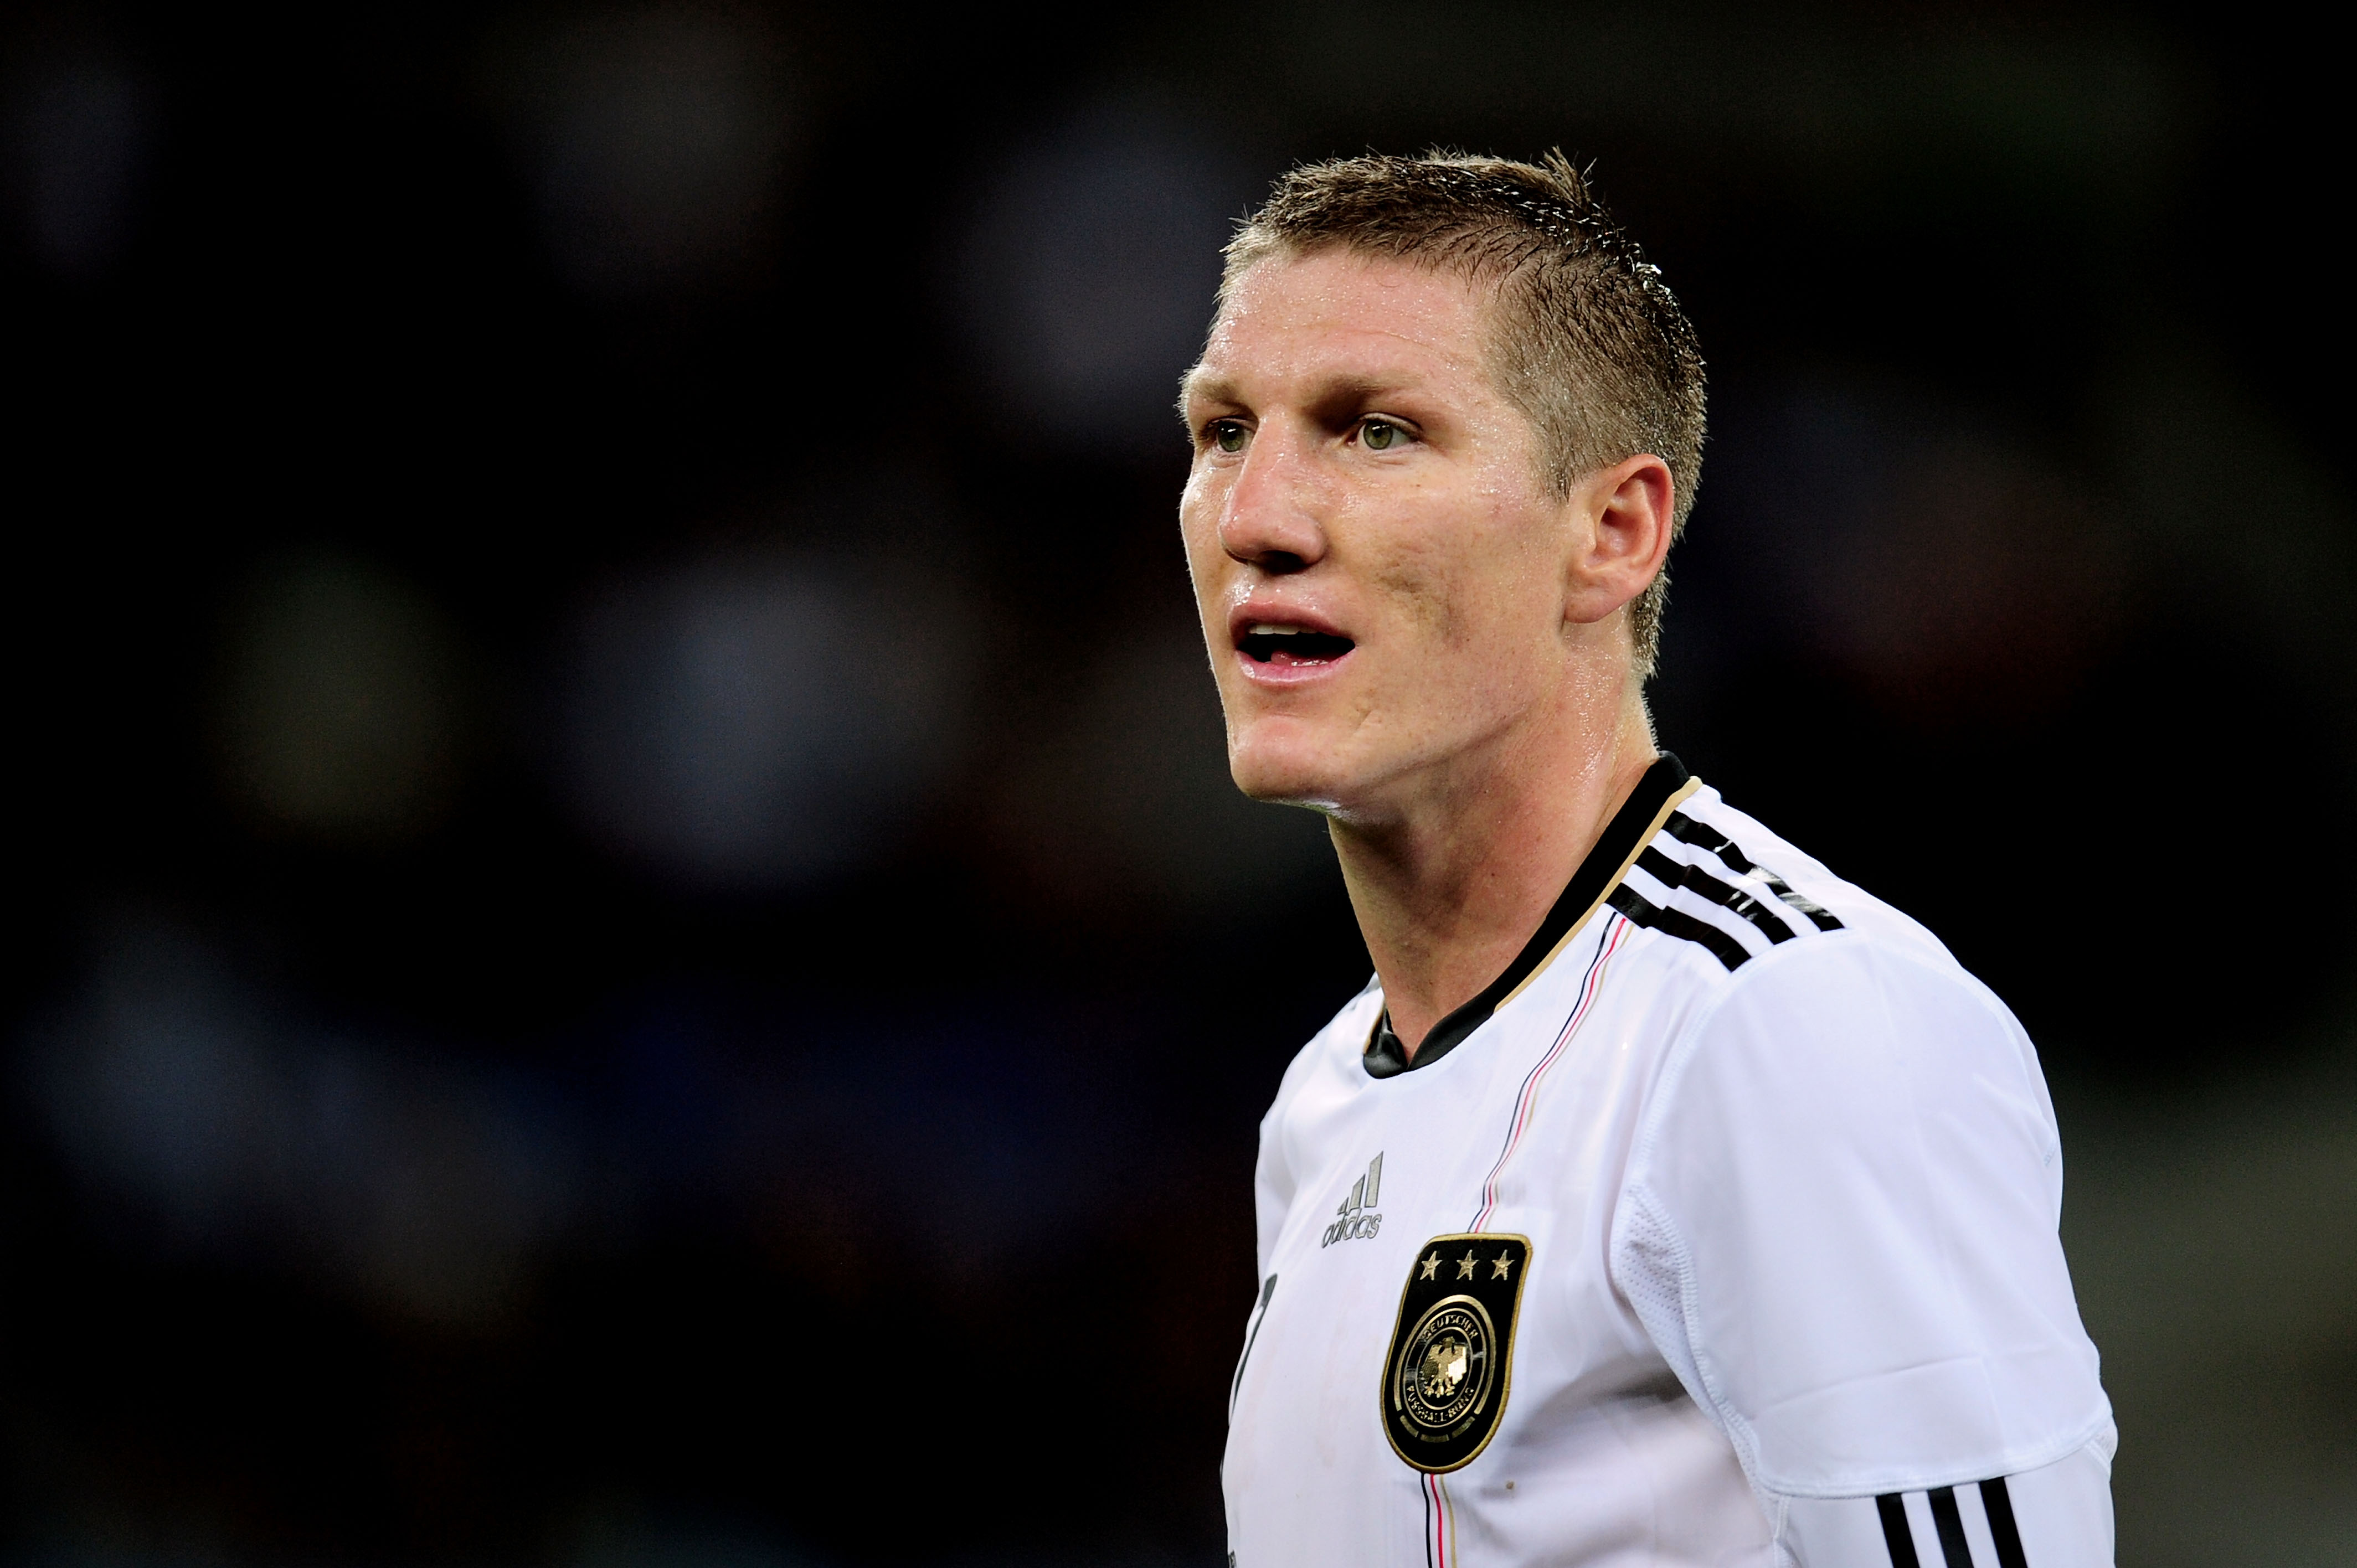 DURBAN, SOUTH AFRICA - JULY 07:  Bastian Schweinsteiger of Germany looks on during the 2010 FIFA World Cup South Africa Semi Final match between Germany and Spain at Durban Stadium on July 7, 2010 in Durban, South Africa.  (Photo by Clive Mason/Getty Imag